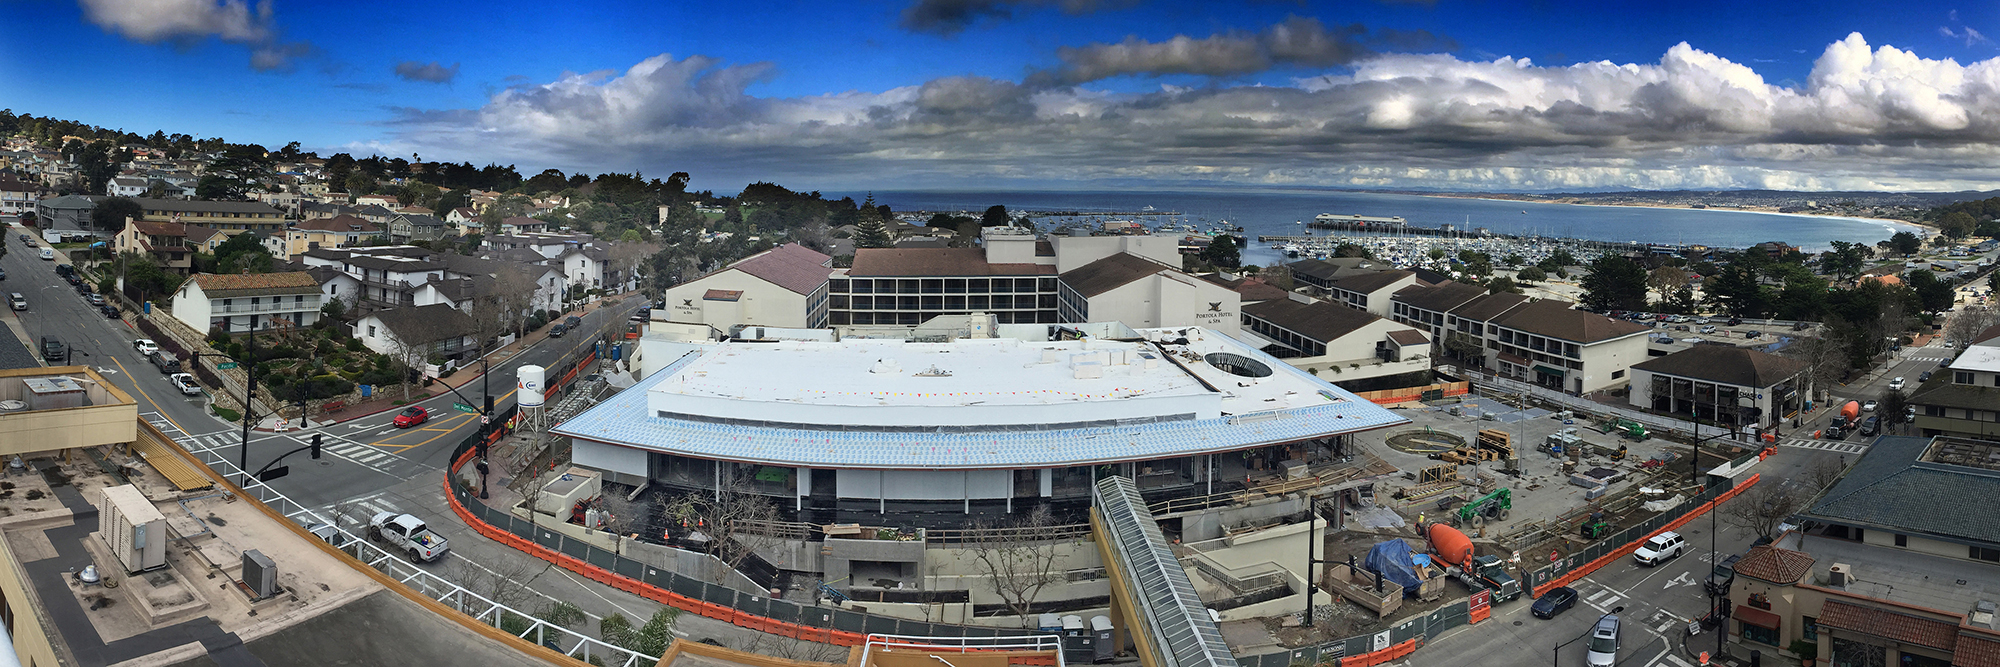 Monterey Bay March 2017 Looking down on the Monterey Conference Center and the Double Tree Hotel by Pat Hathaway ©2017 Accession # 2017-002-0003